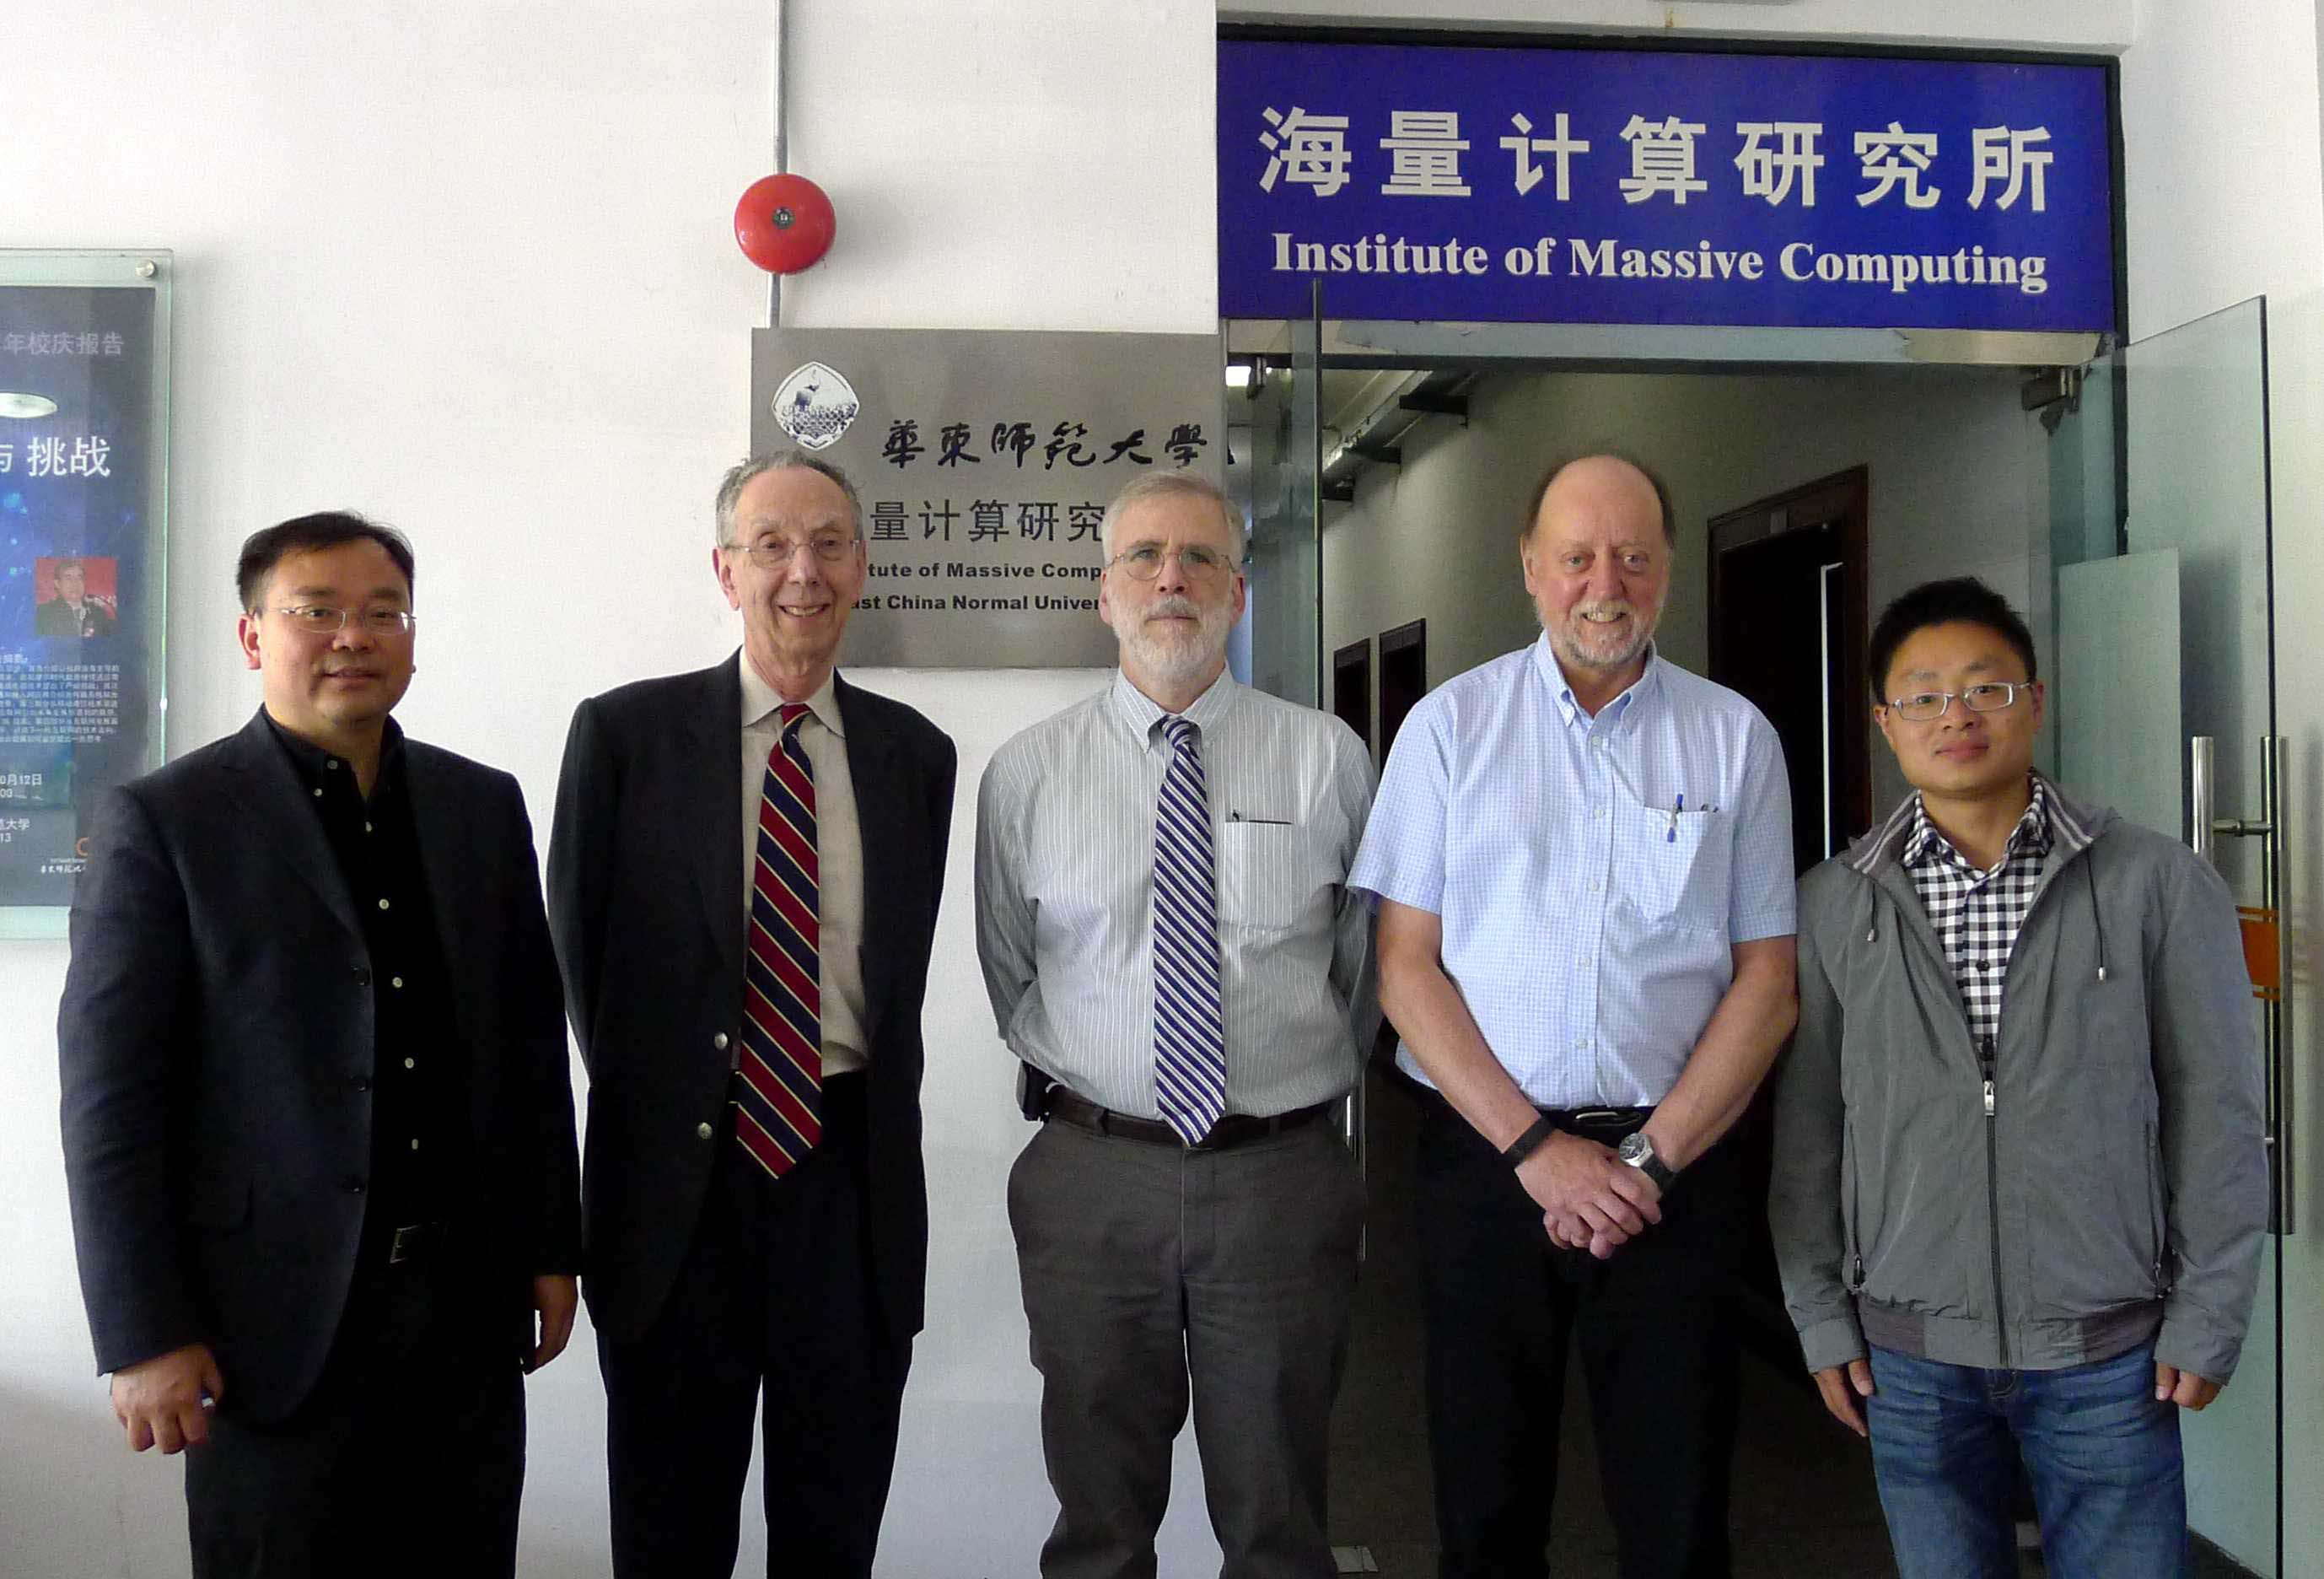 ATIP visits East China Normal University (ECNU) in May 2014, from left to right, Prof. Aoying ZHOU (Director, Center for cloud computing and big data, ECNU), Dr. David Kahaner (President of ATIP), Prof. Jack Dongarra (Innovative Computing Laboratory, Department of Electrical Engineering and Computer Science, University of Tennessee), Prof. Minqi ZHOU (Center for cloud computing and big data, ECNU)